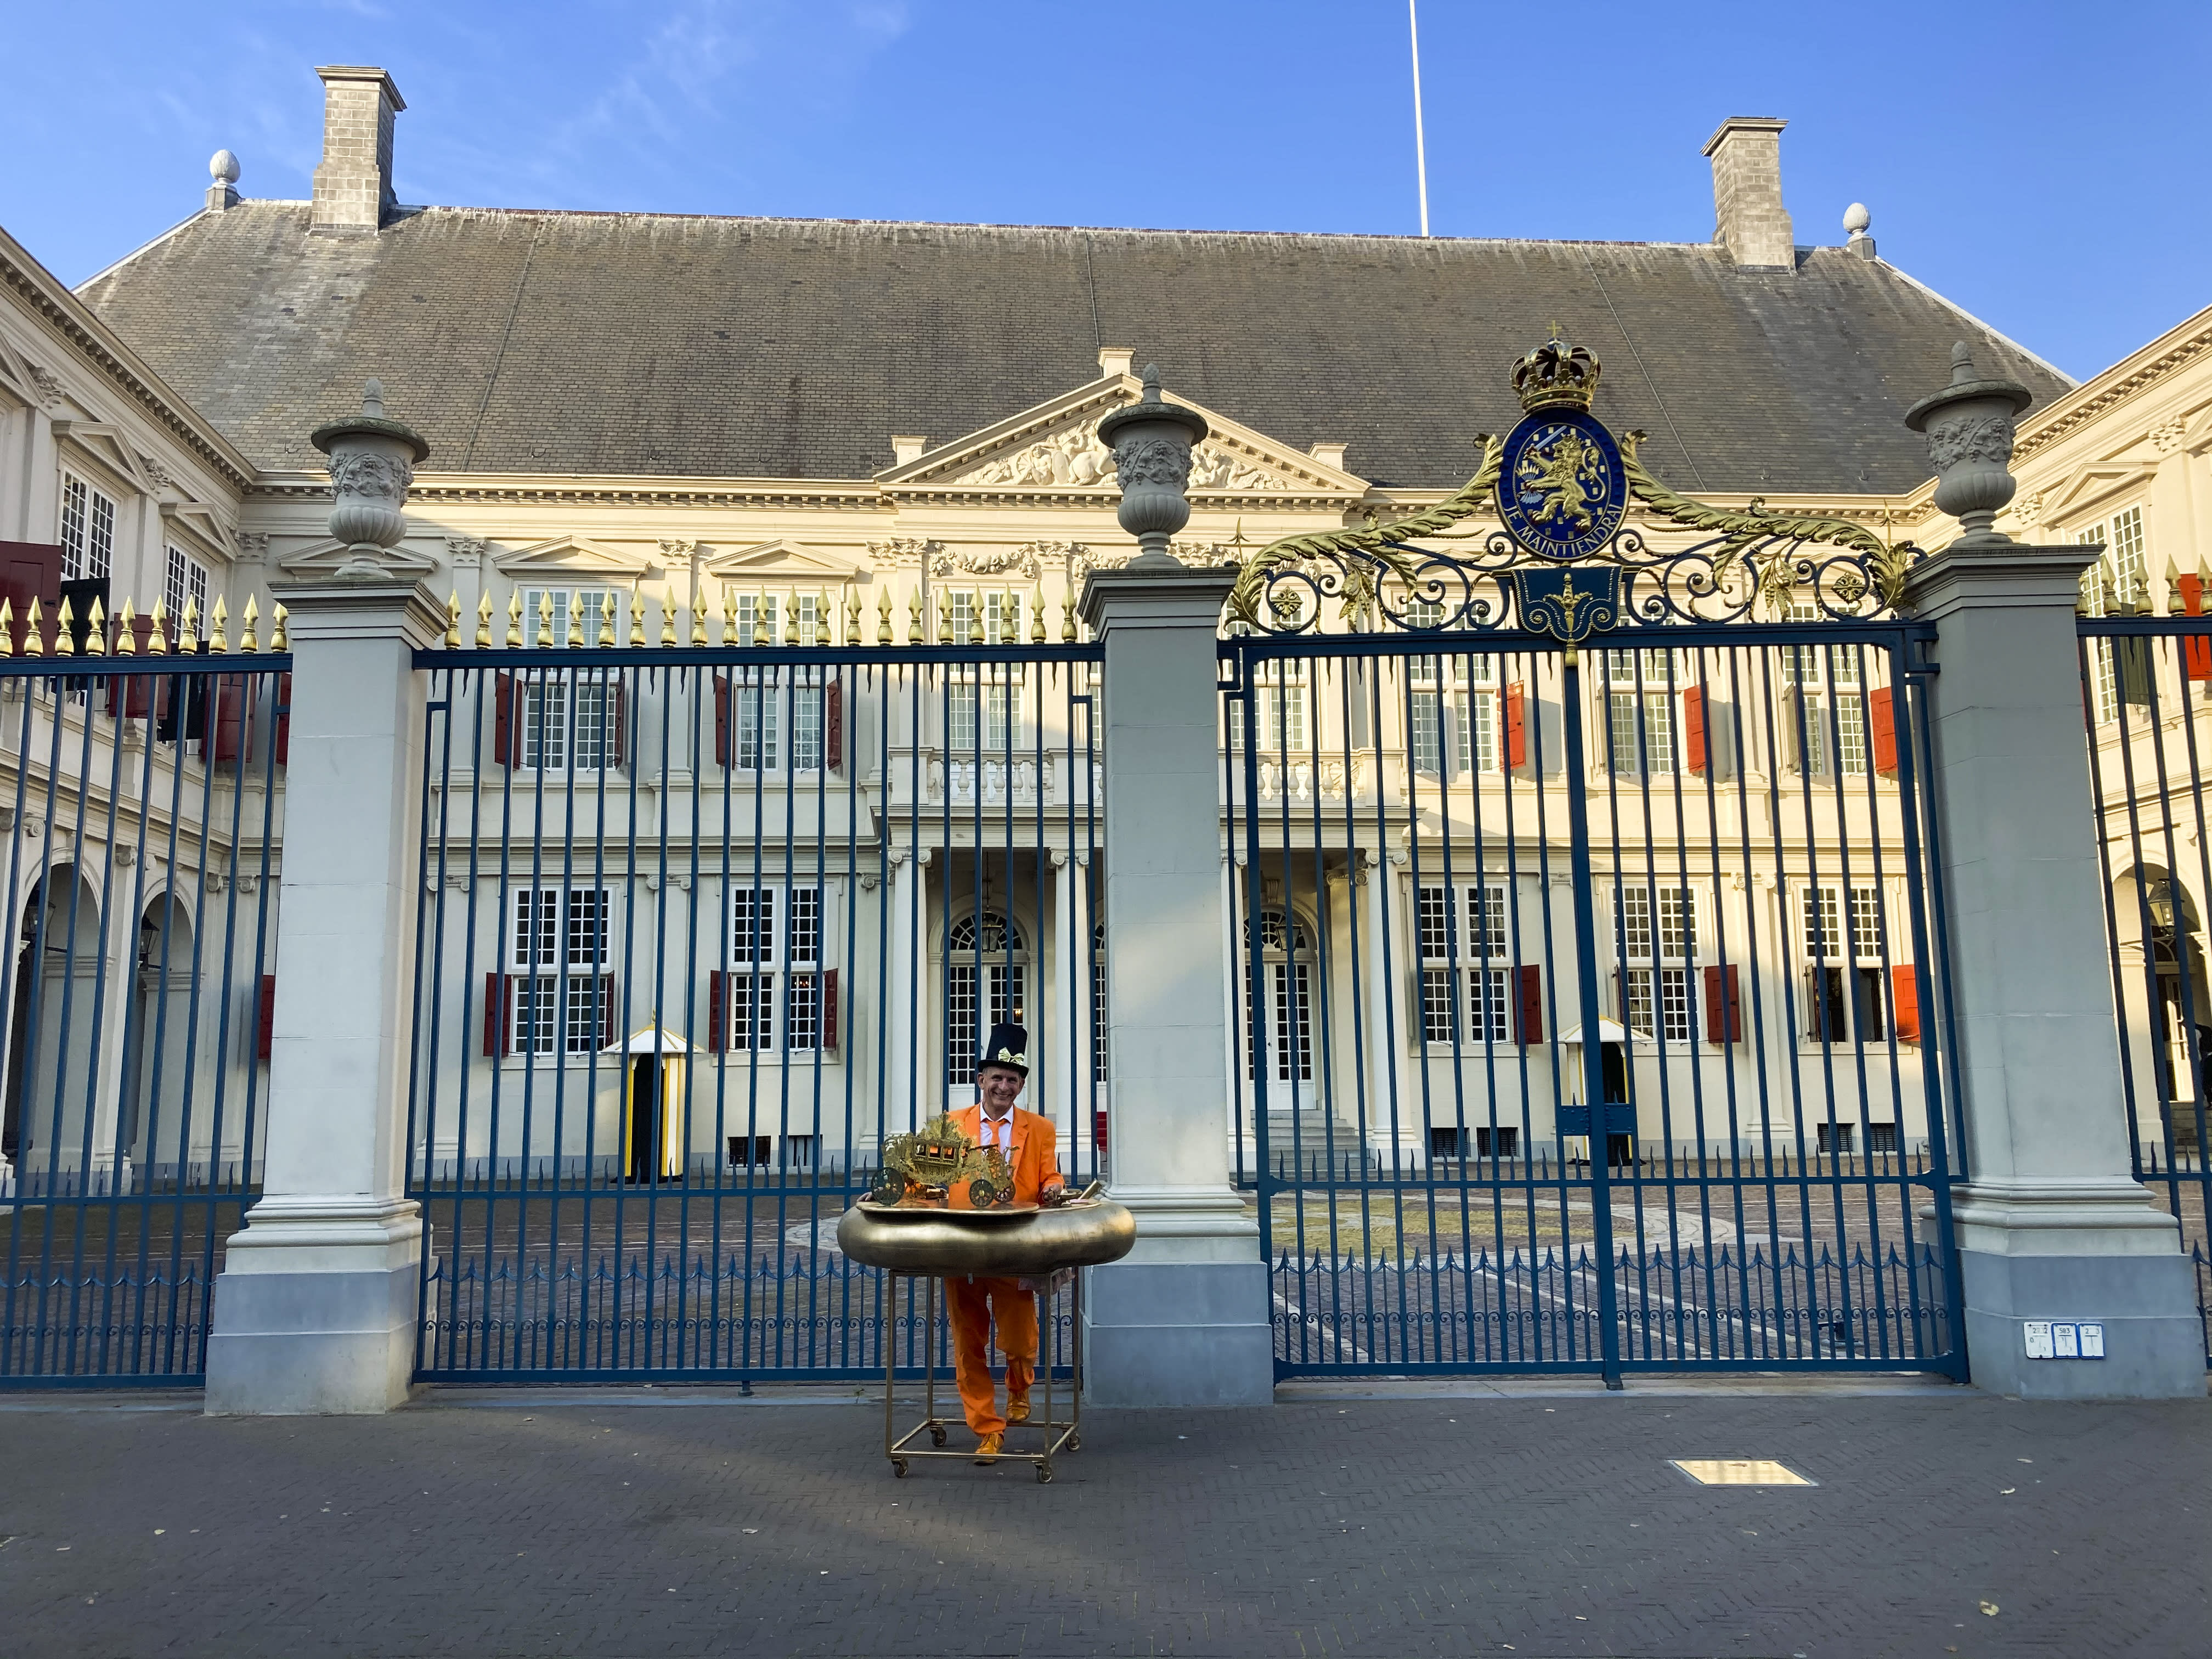 "Resplendent in orange suit, tie and shoes and a black hat with gold bow and protected by a homemade ""corona bumper"" decorated with a model carriage, Johan Vlemmix, center, stands in front of Royal Palace Noordeinde, in The Hague, Netherlands, Tuesday, Sept. 15, 2020. Vlemmix drove three hours to get to The Hague, as he has done every budget day for more than 20 years, to watch King Willem-Alexander and Queen Maxima appear on the palace balcony, rear. The balcony appearance of the king and queen has been cancelled due to COVID-19 related measures. ""It's surreal,"" he said. ""You see the red carpet has been rolled out, the king has arrived and there's nobody here. I've never experienced this. (AP Photo/Mike Corder)"